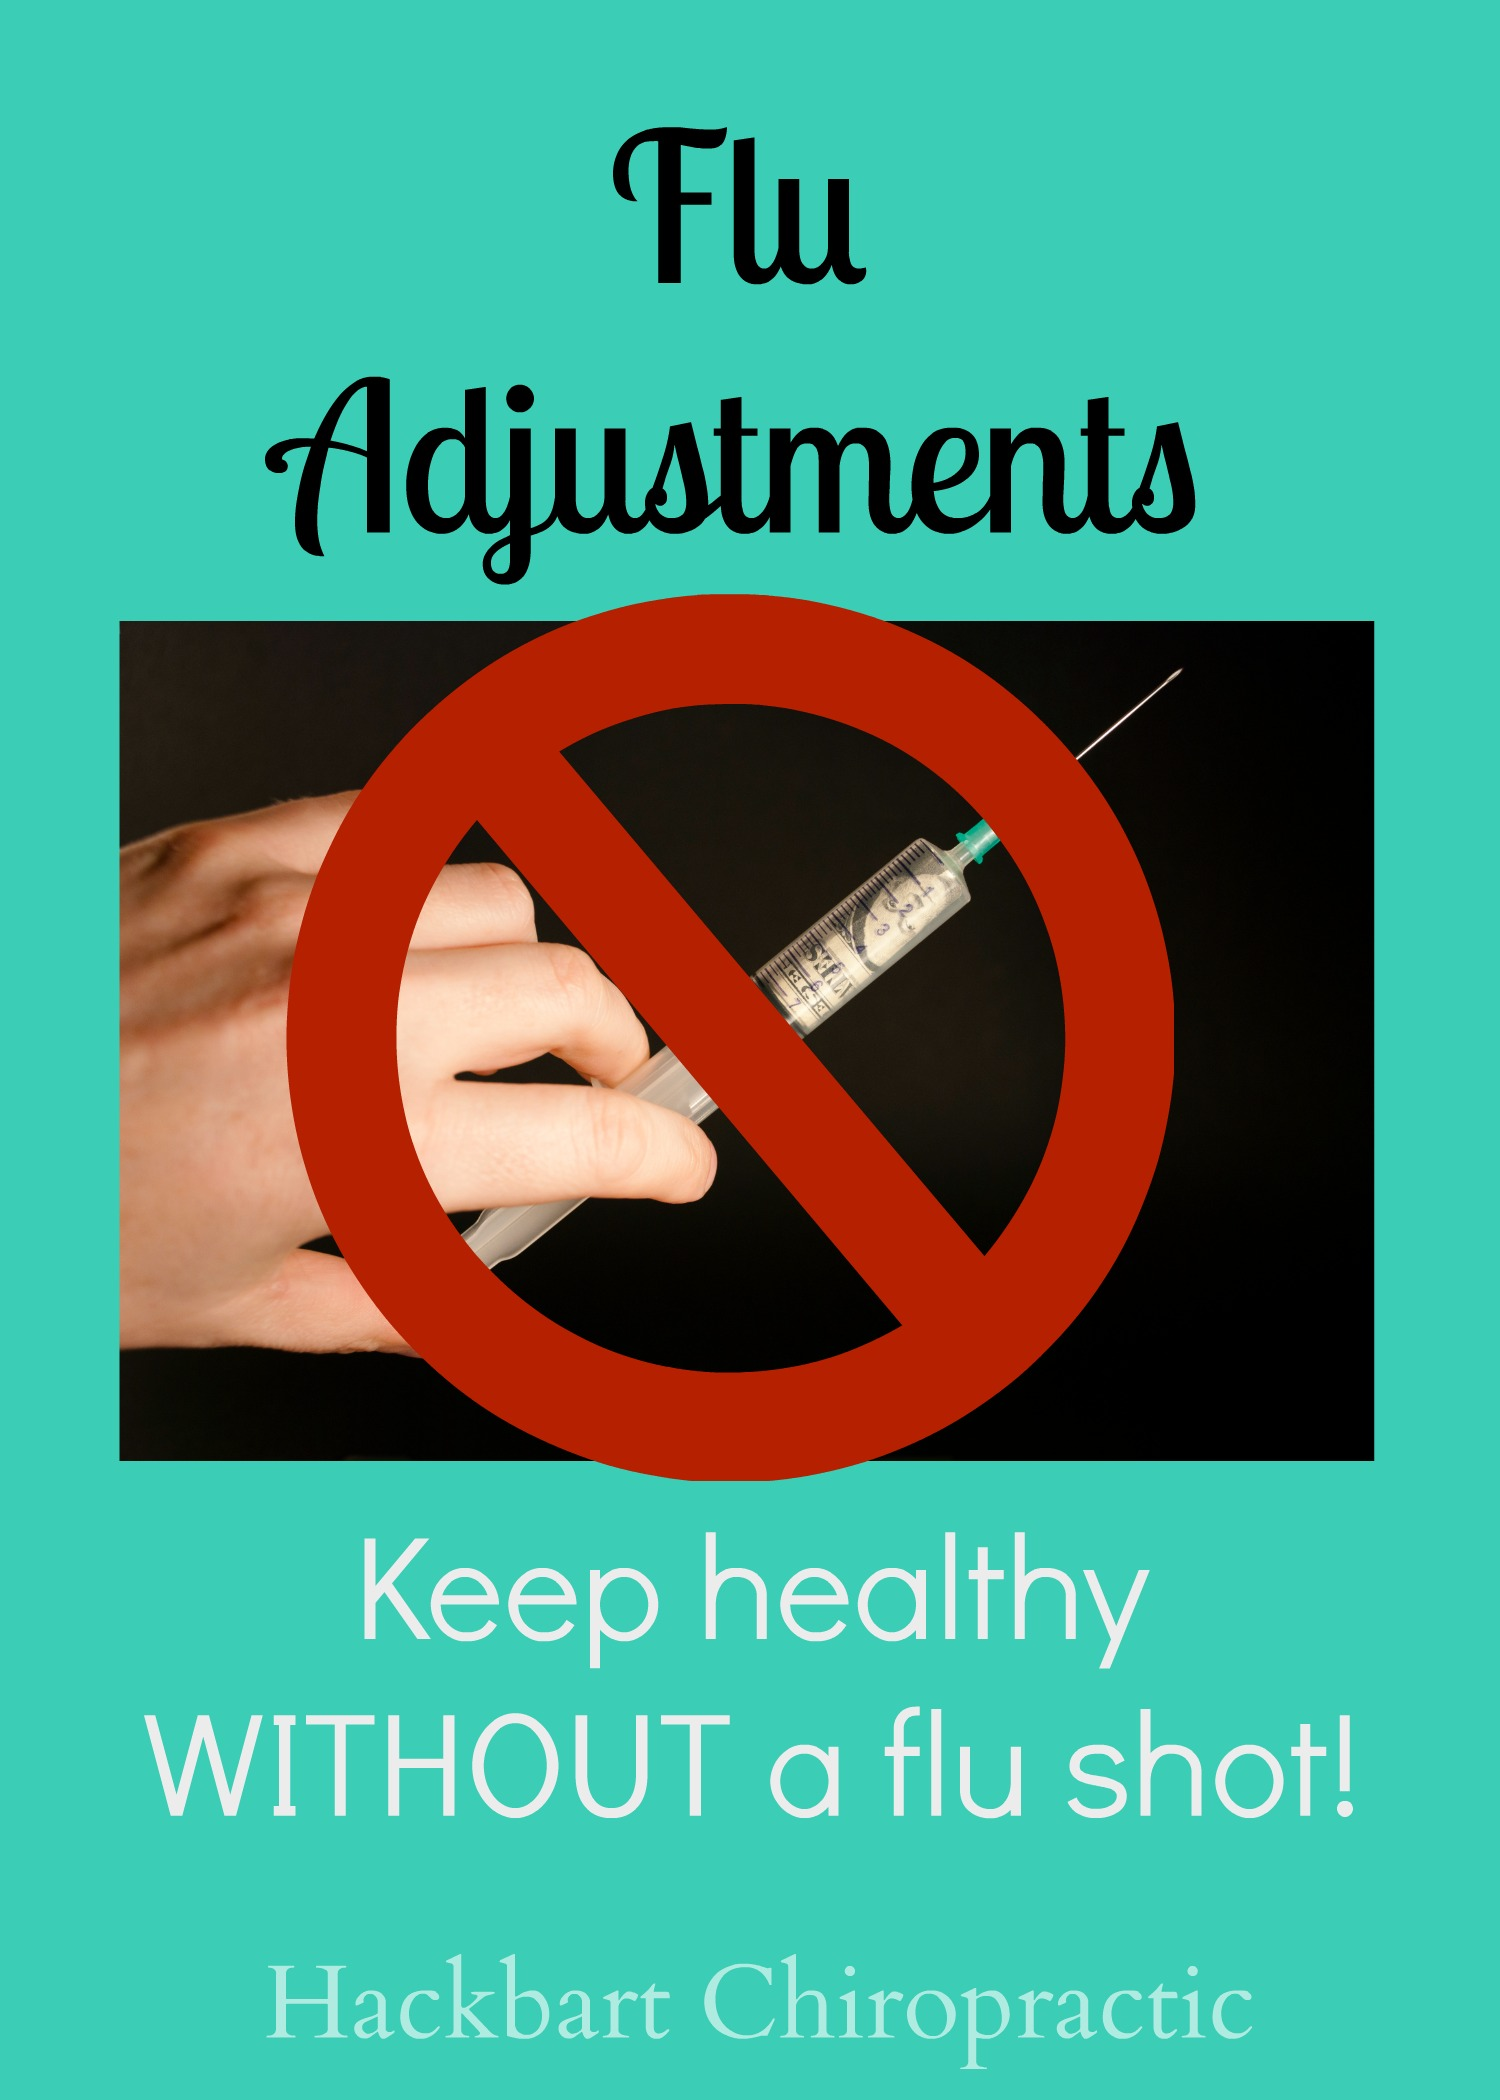 chiropractic care in college park for cold and flu relief | AICA College Park